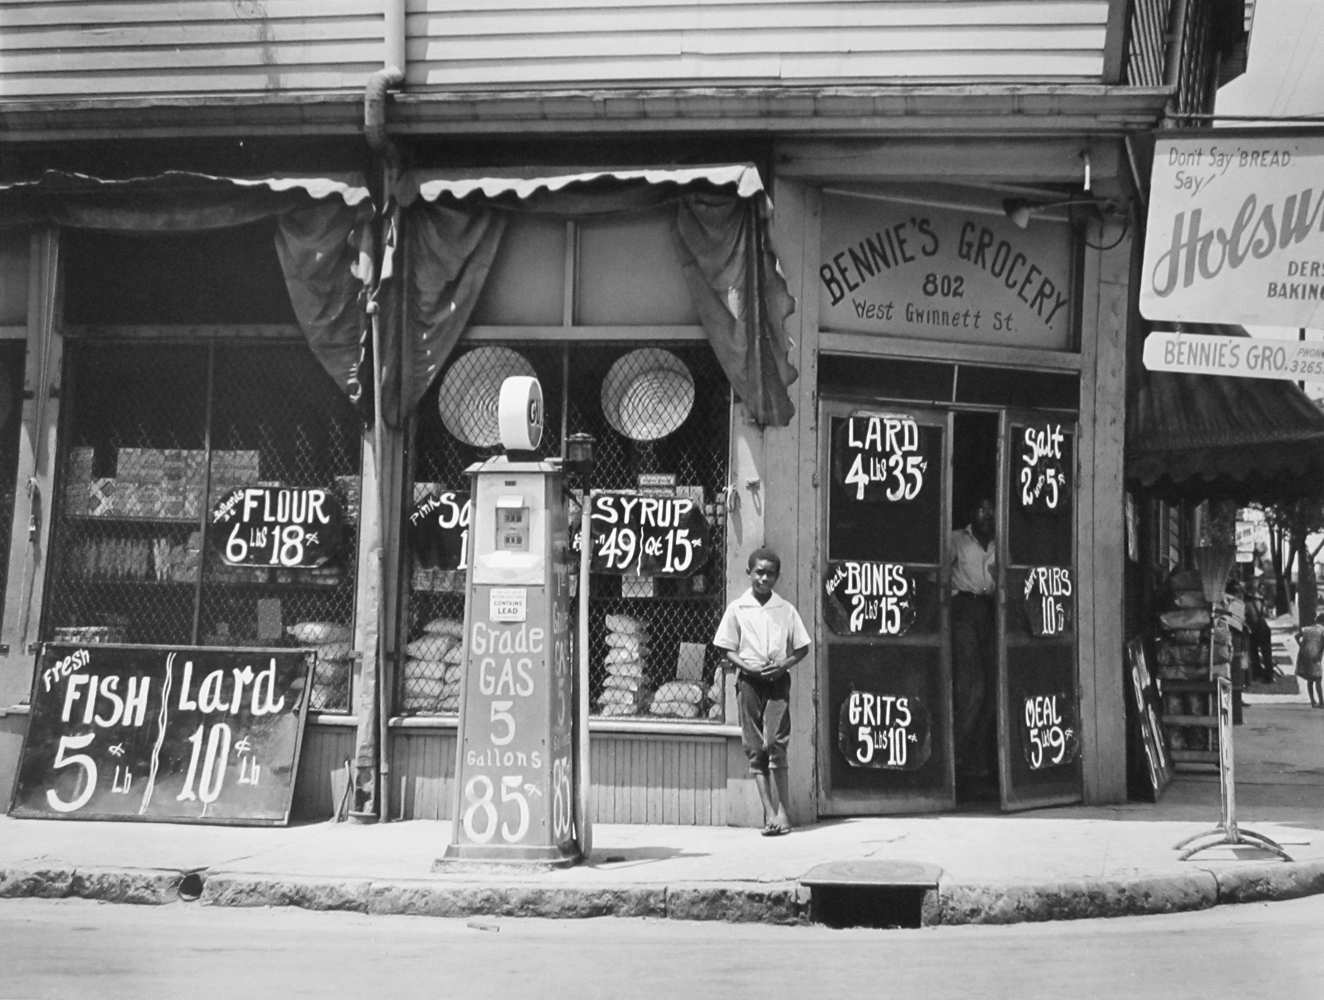 Marion Post Wolcott, Bennie's grocery store. Sylvania, Georgia, 1939, gelatin silver print, signed, 11 x 14 inches